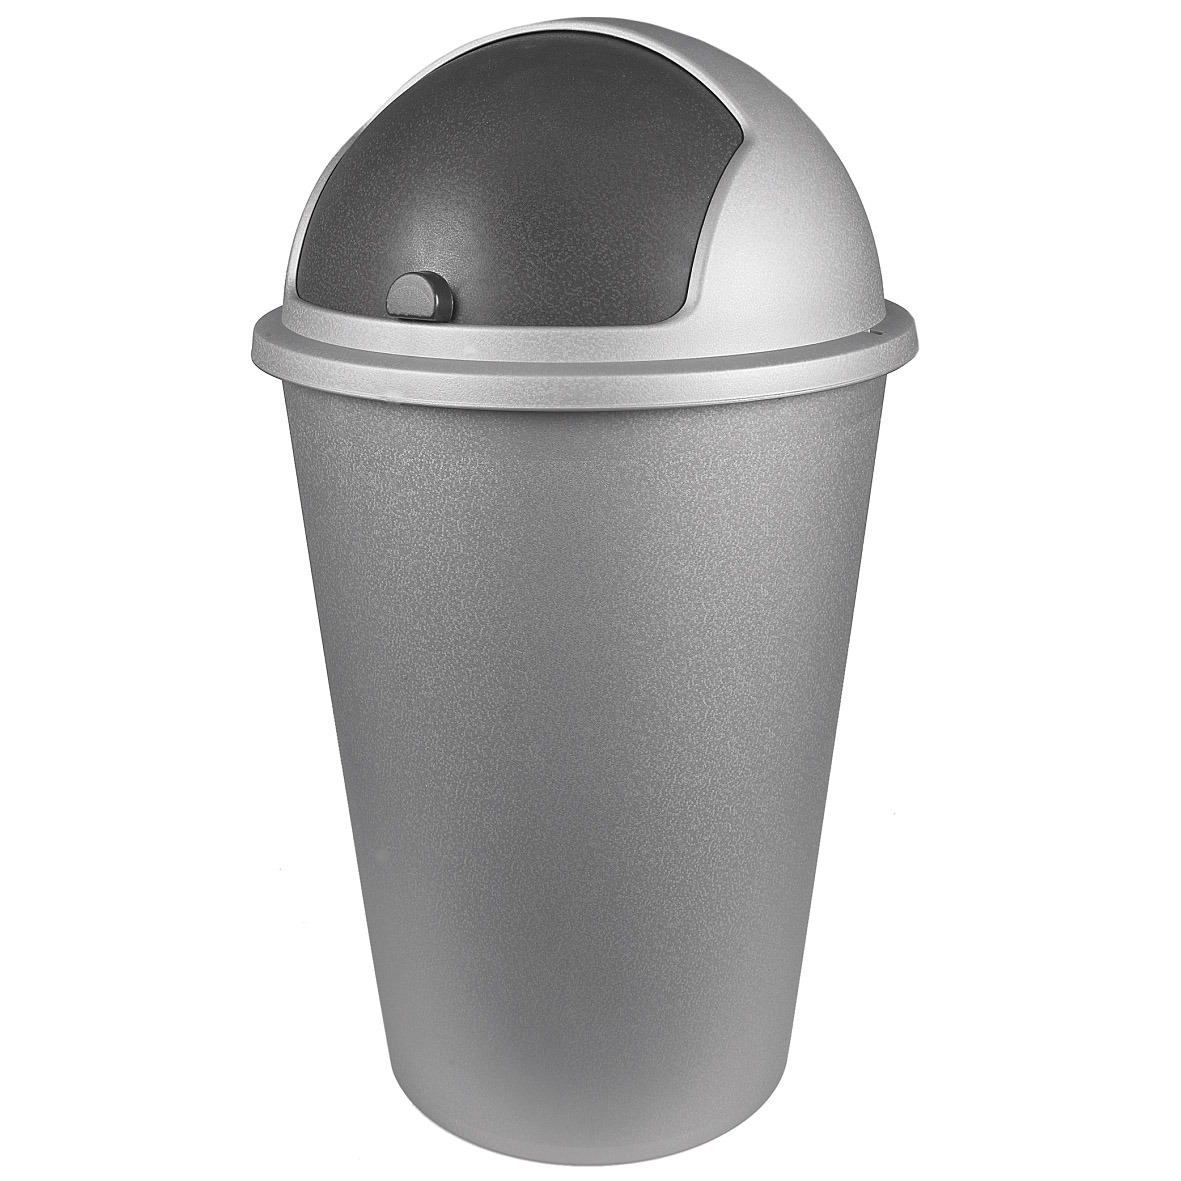 Bins, waste with a<br> sliding lid, 50<br>liters